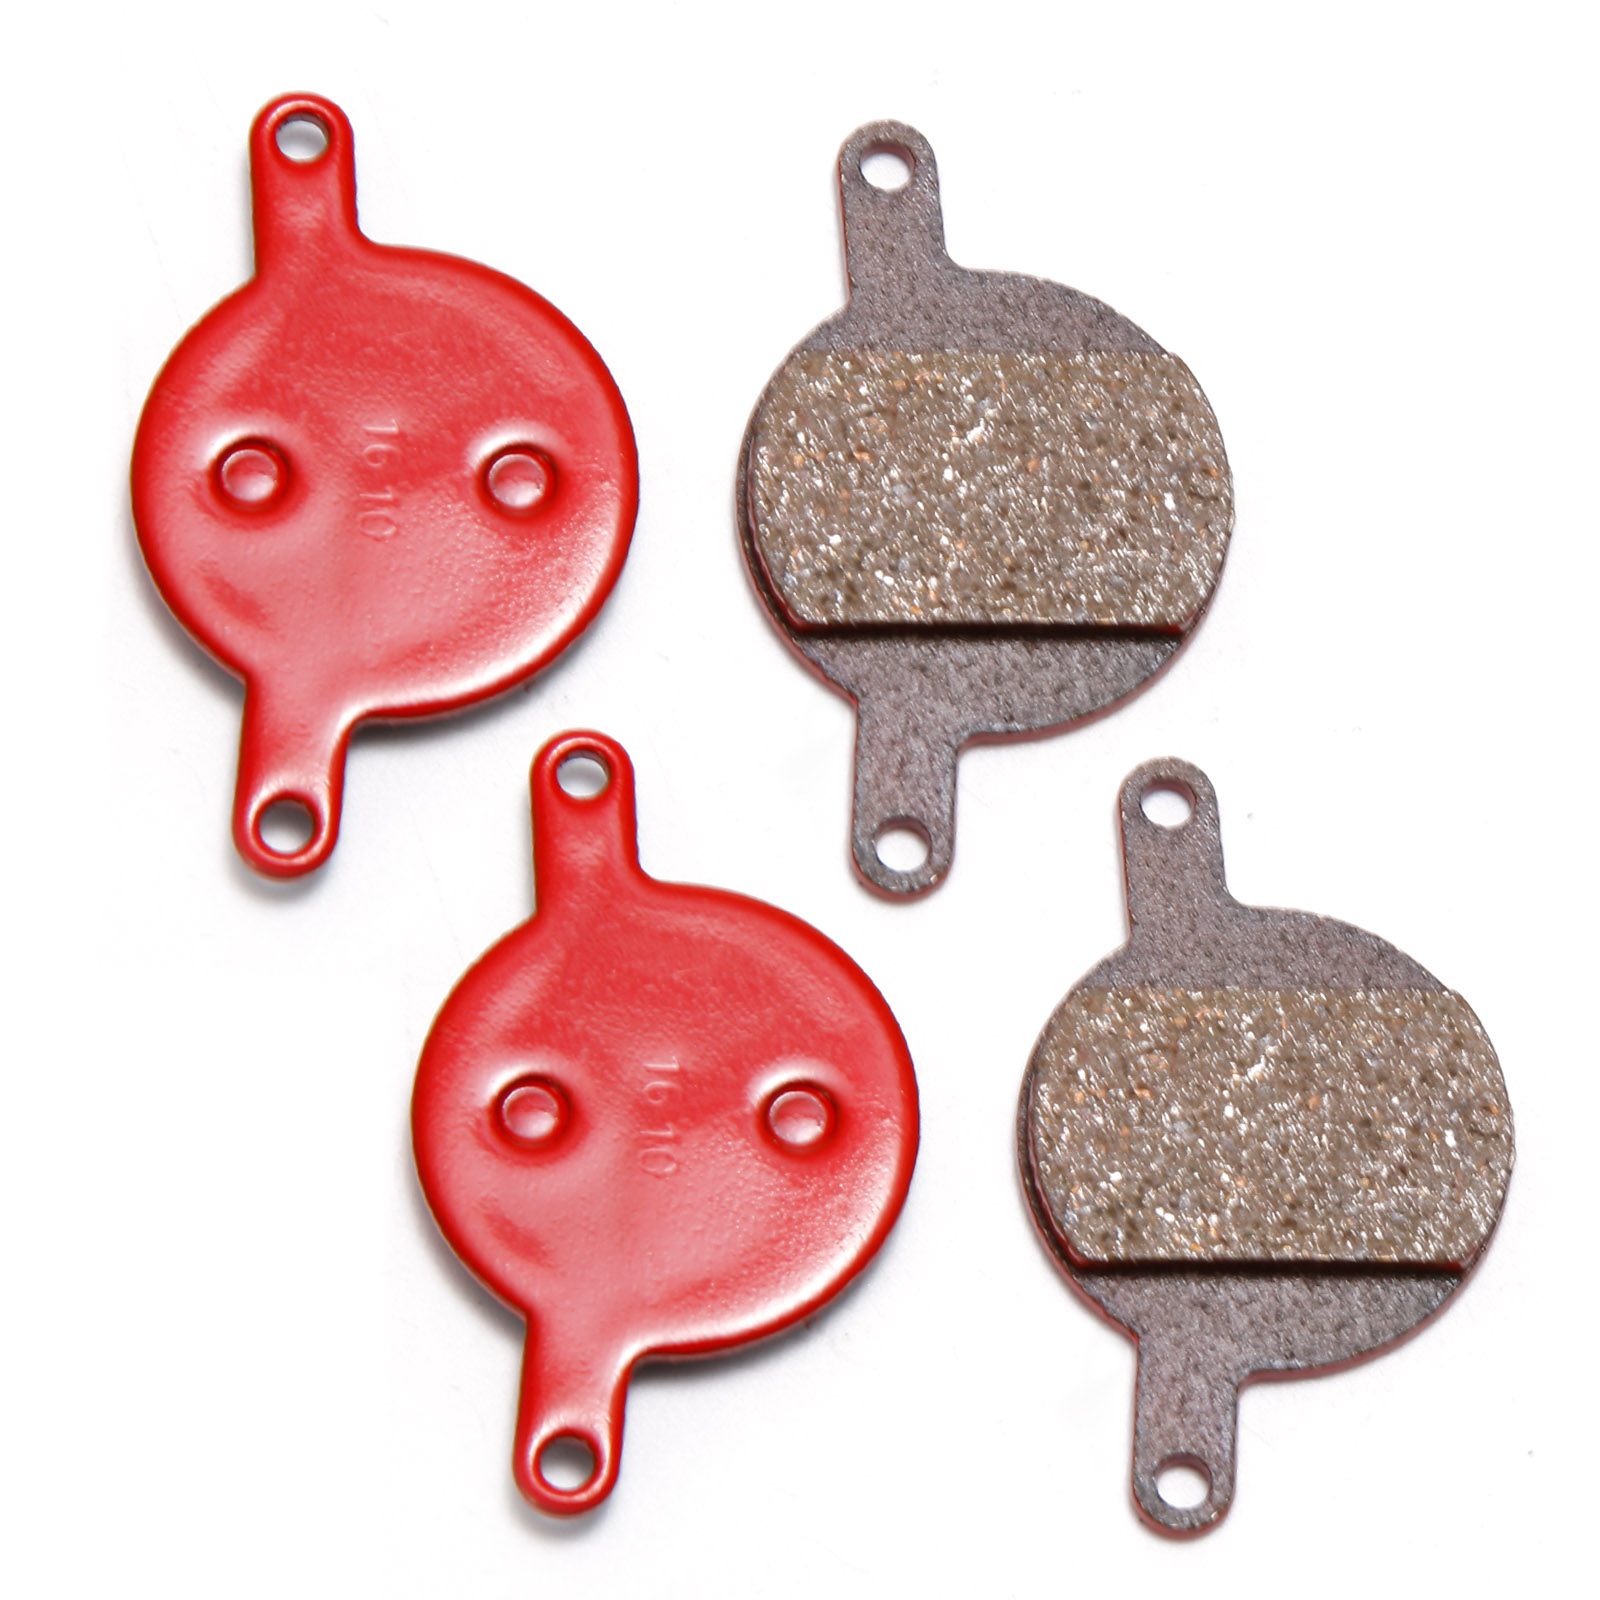 Organic Disc Brake Pads Replacement Red 4 Pairs for Magura Julie Model 2001-2008